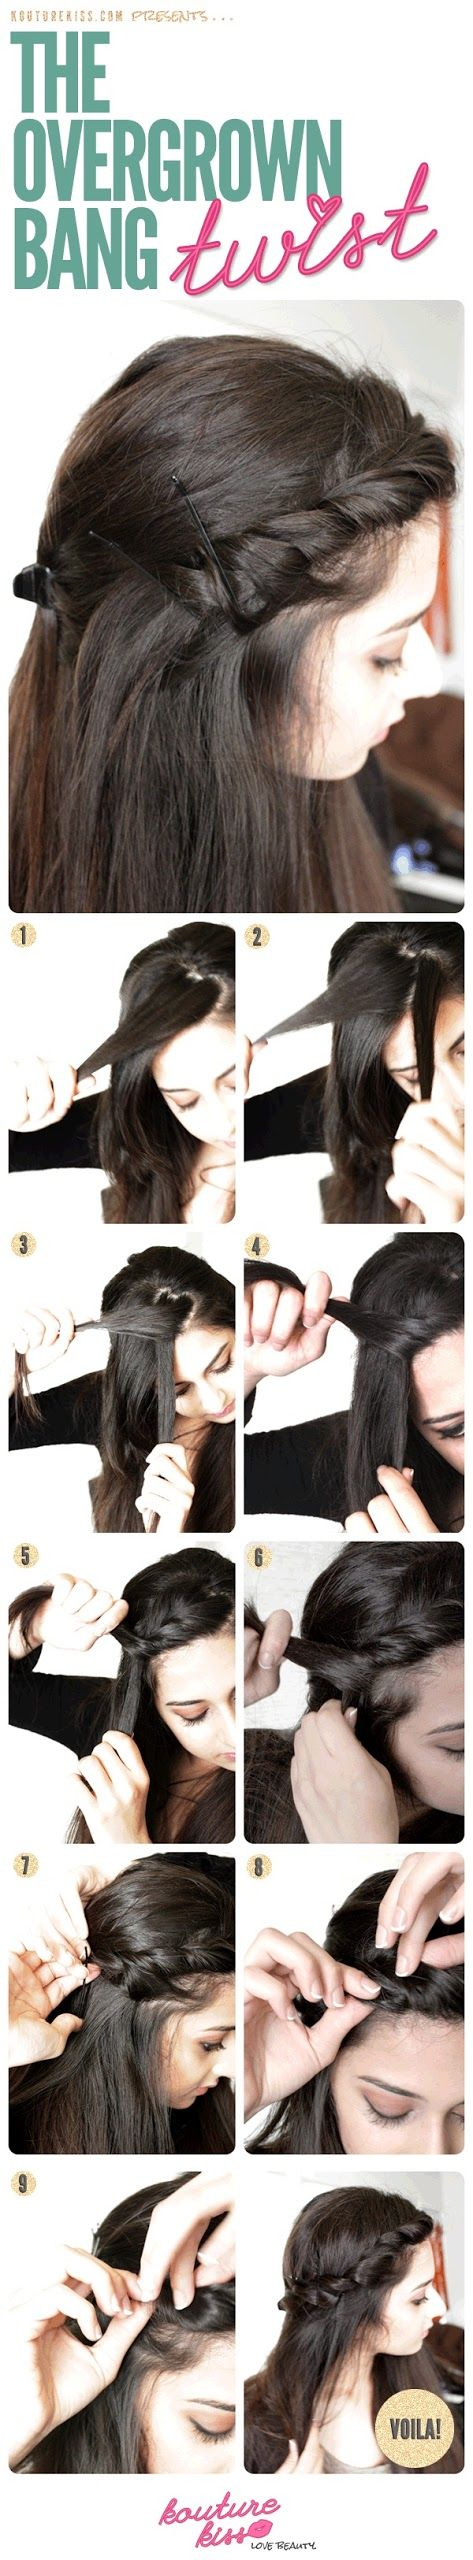 Overgrown bang twist. This will be very useful right now as I'm trying to grow out my bangs